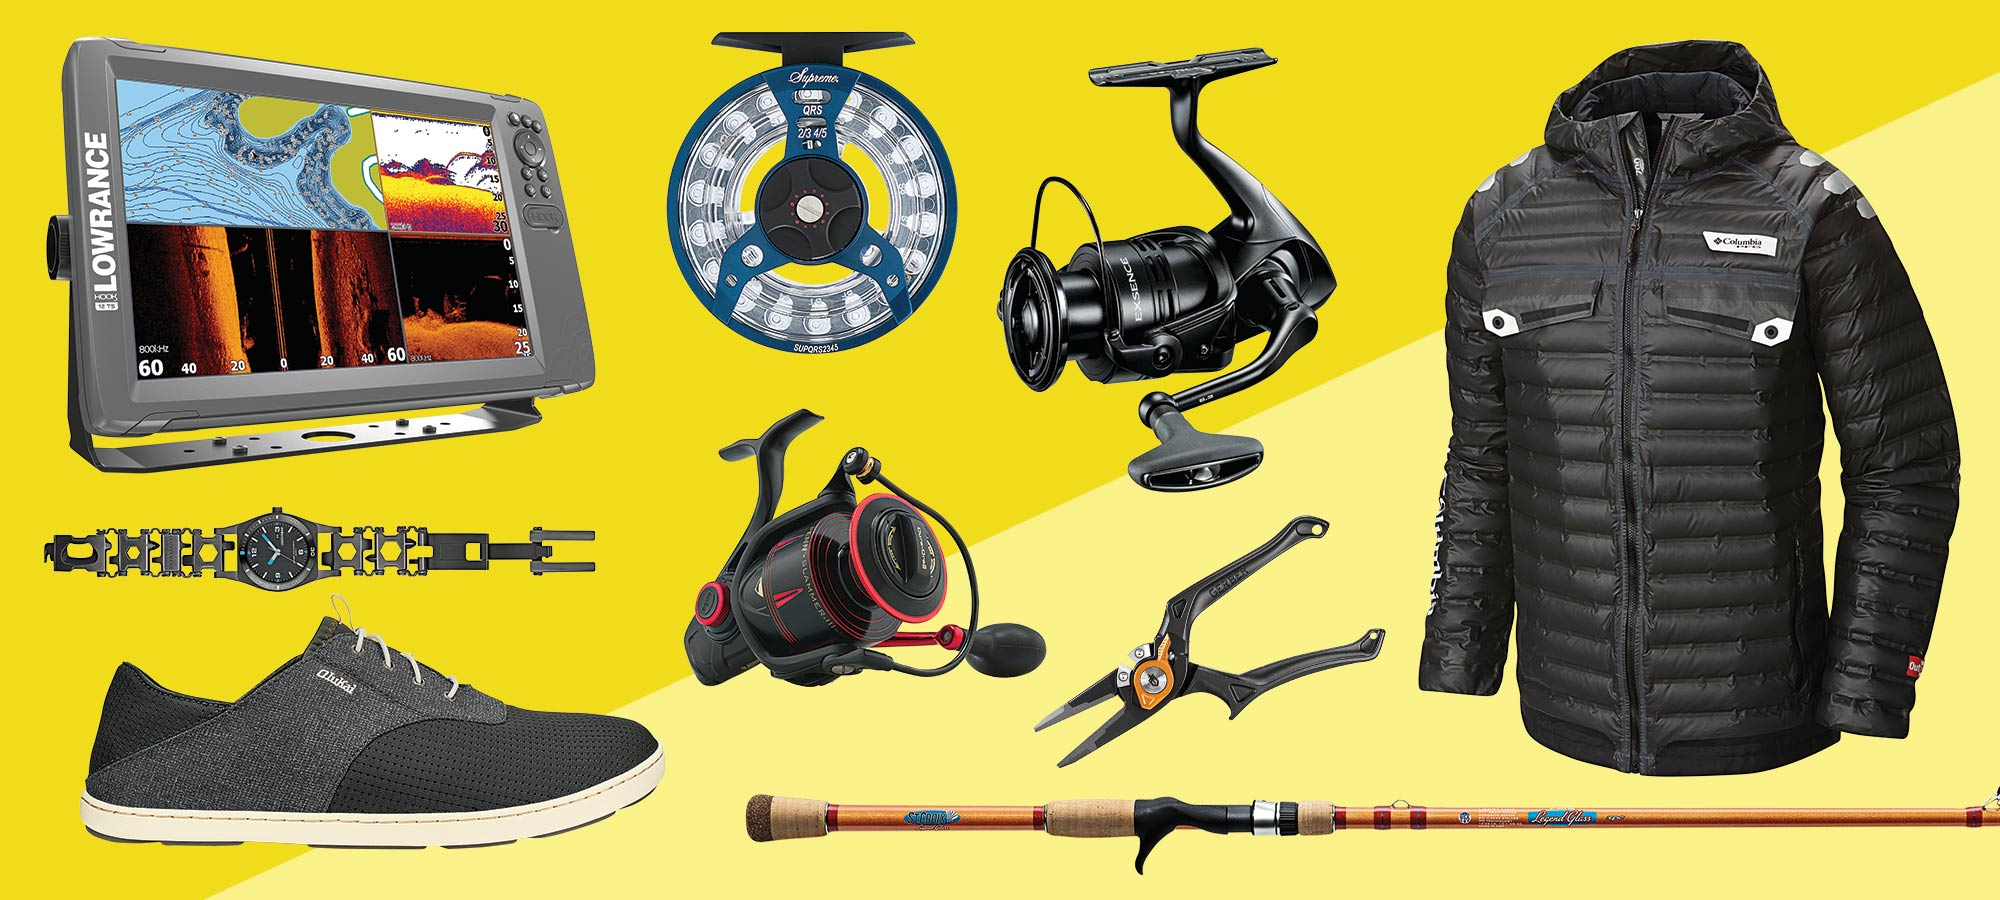 Best new fishing gear of 2018